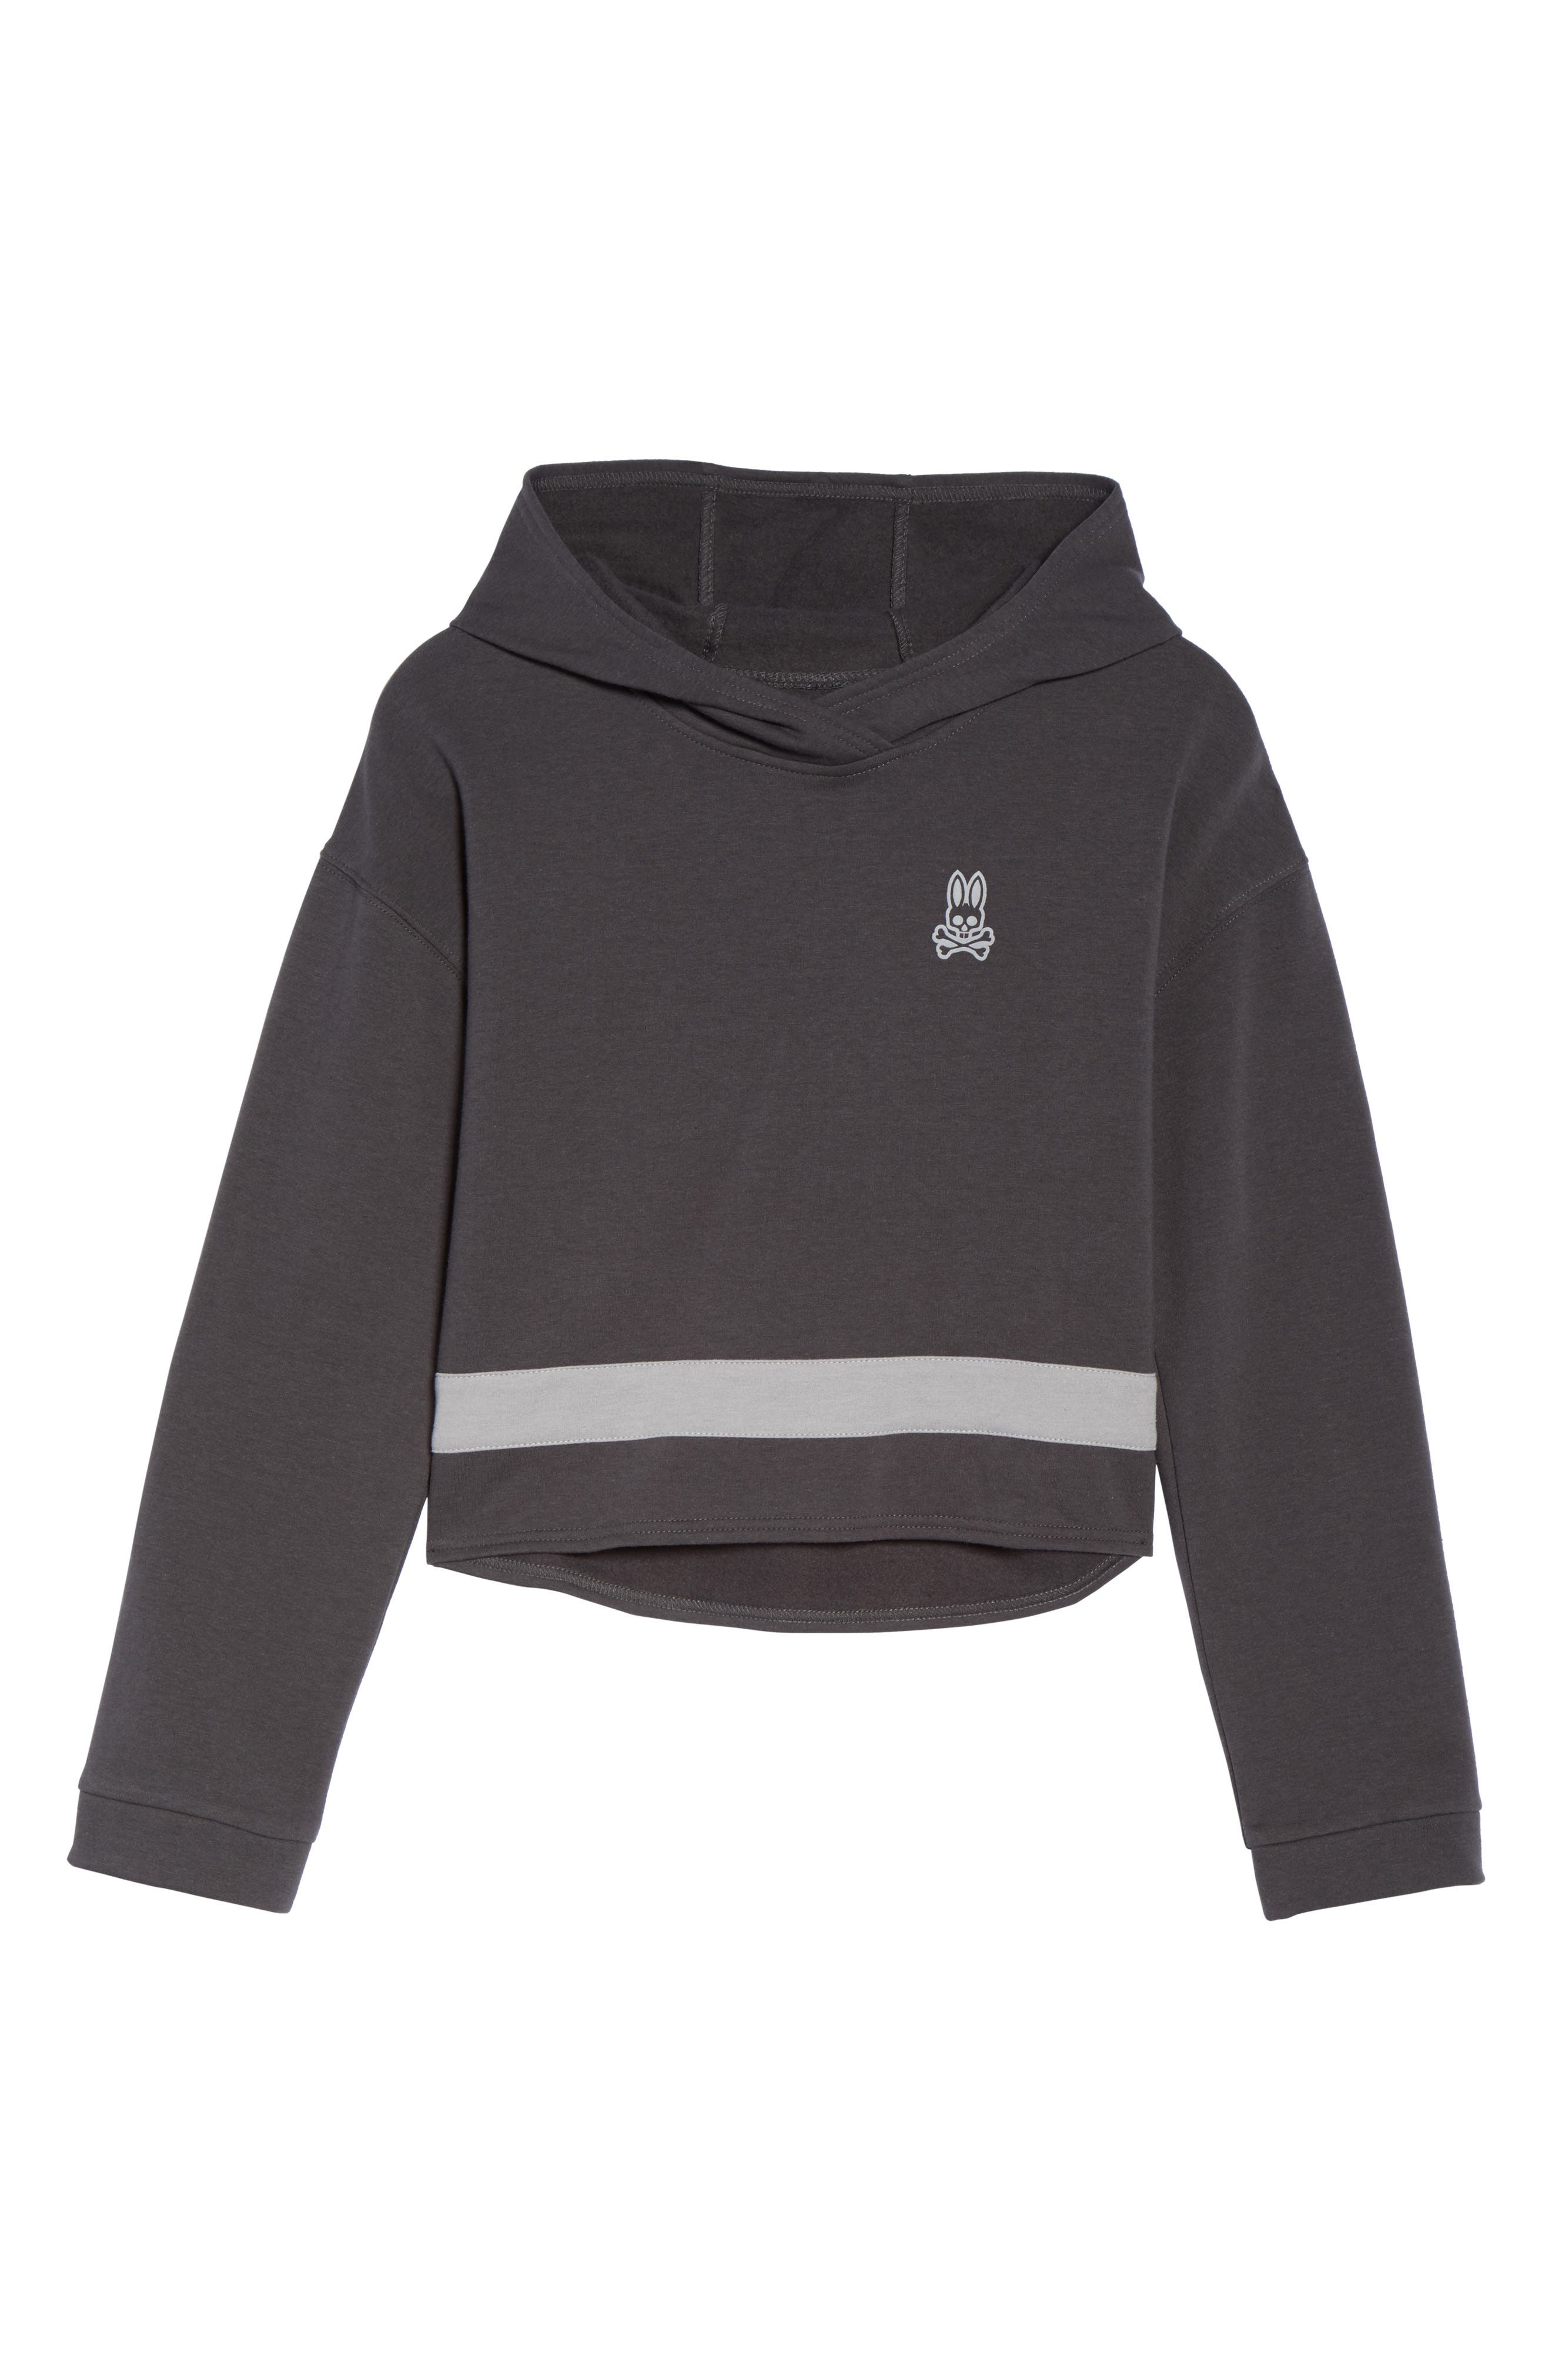 Comfy Lounge Hoodie,                             Alternate thumbnail 6, color,                             020